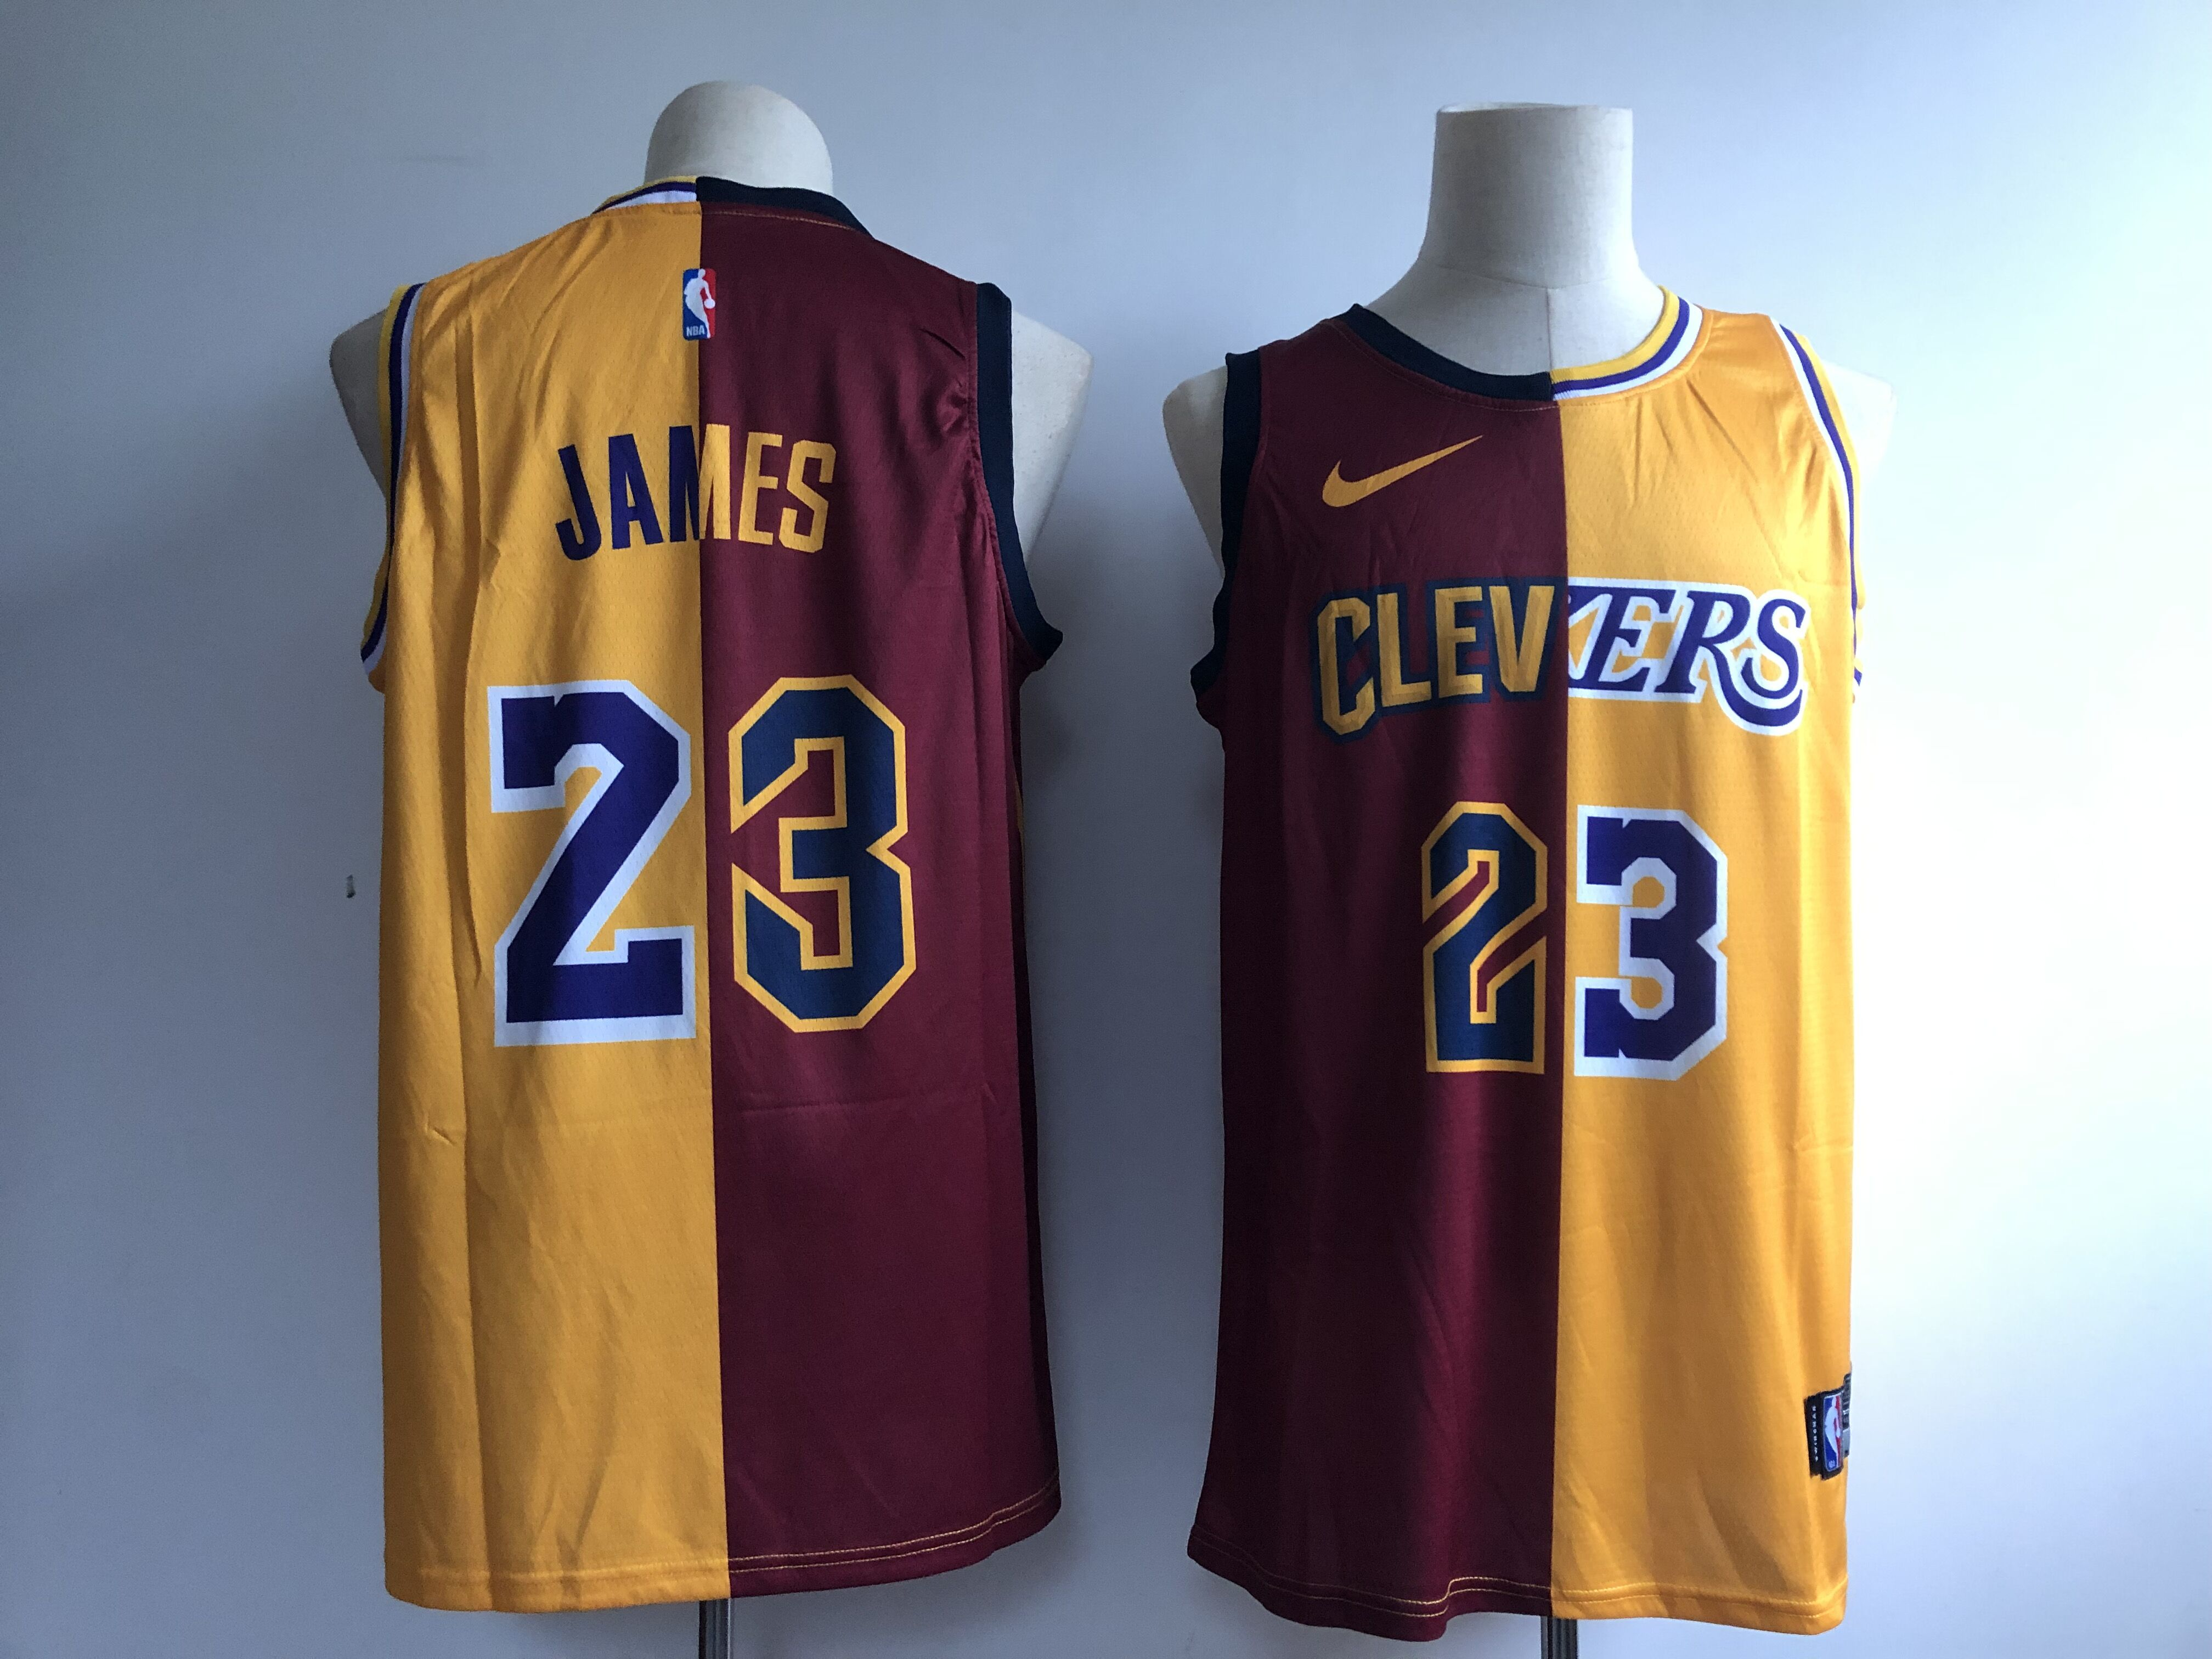 43fdf701 Cleveland Cavaliers : Cheap NFL Jerseys-Buy NFL Jerseys Online From ...